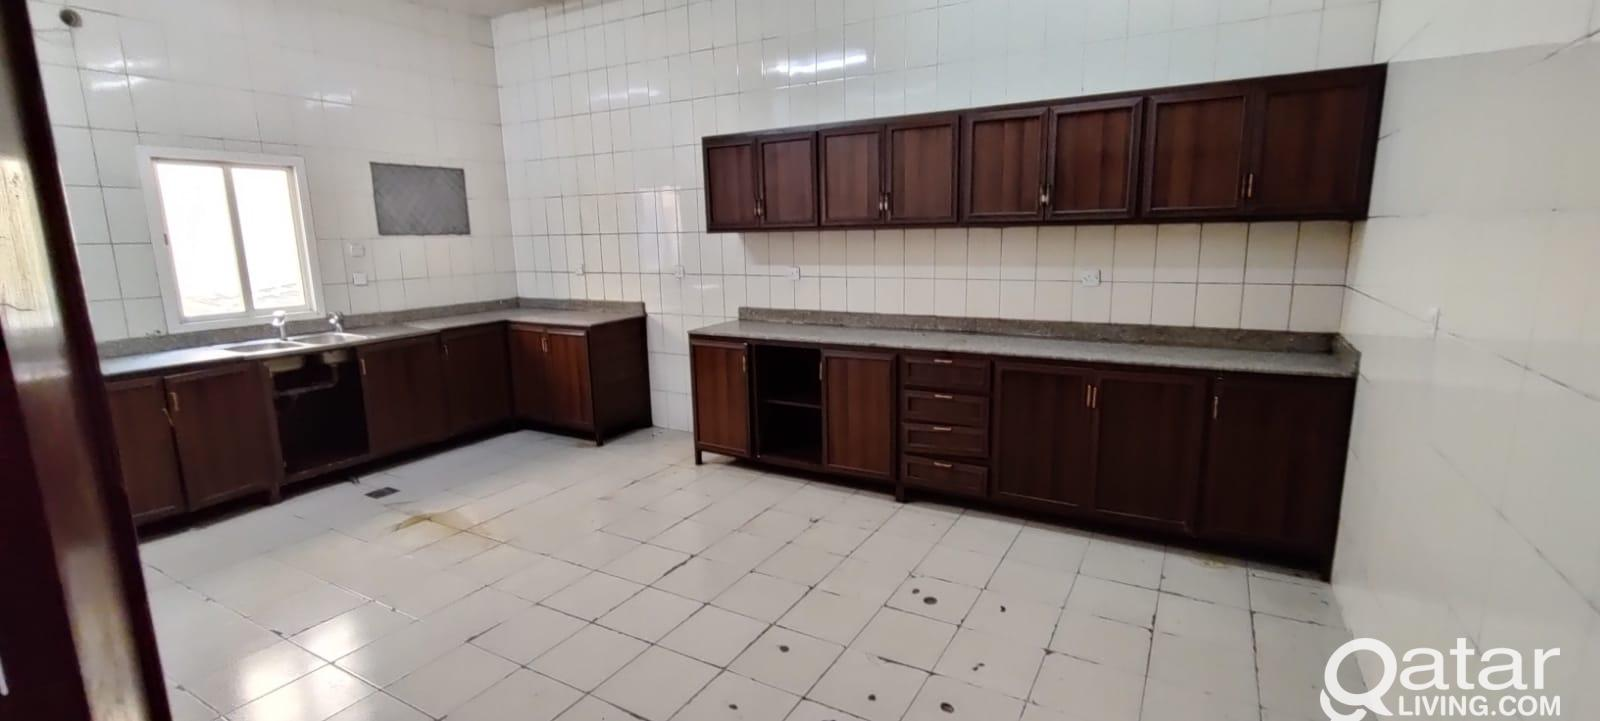 42 Room, 84 Room  - Labor Camp For Rent